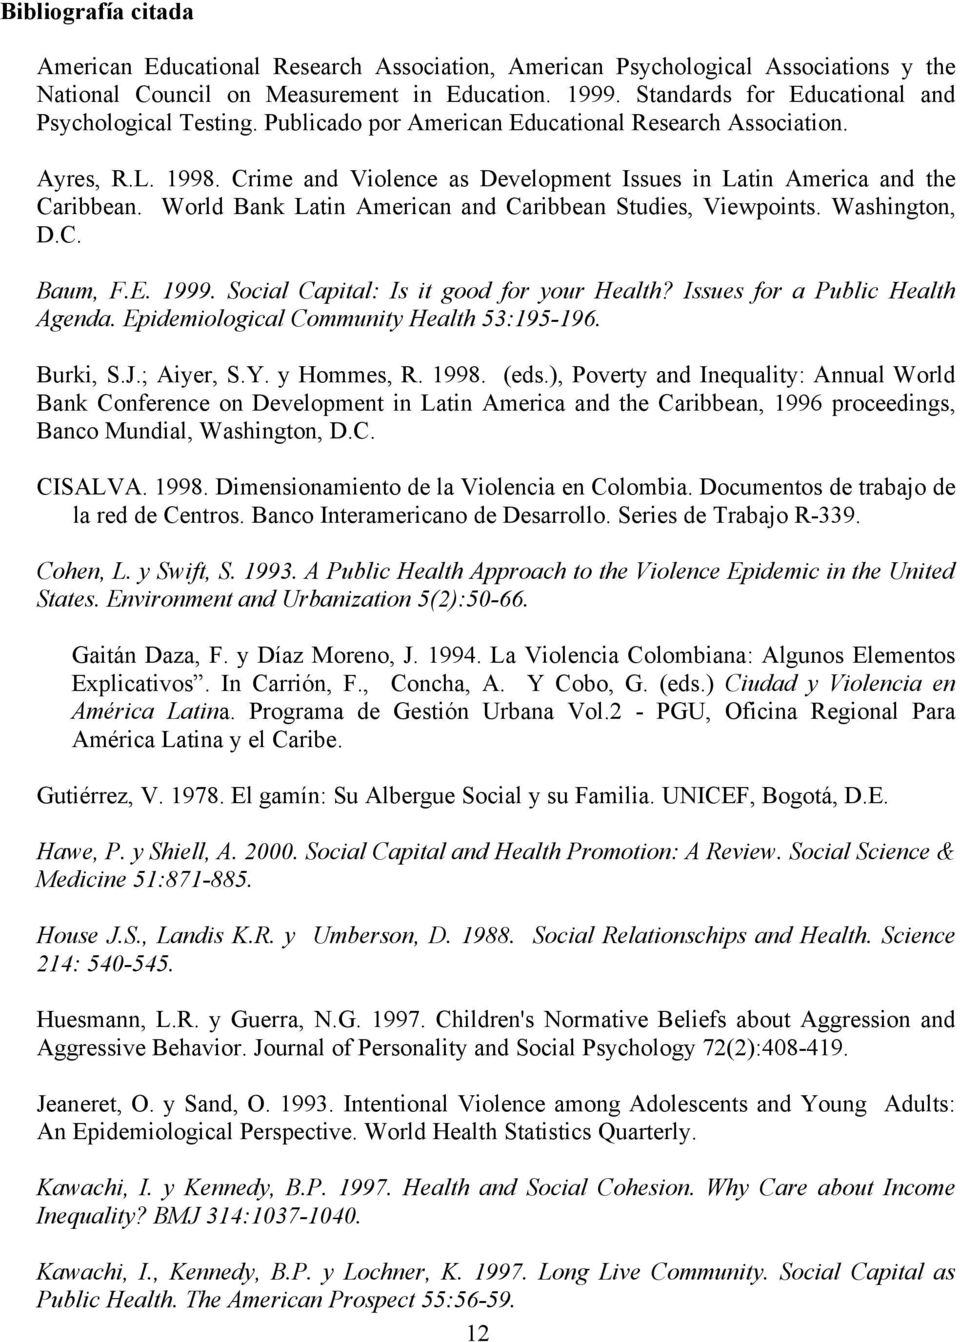 Crime and Violence as Development Issues in Latin America and the Caribbean. World Bank Latin American and Caribbean Studies, Viewpoints. Washington, D.C. Baum, F.E. 1999.